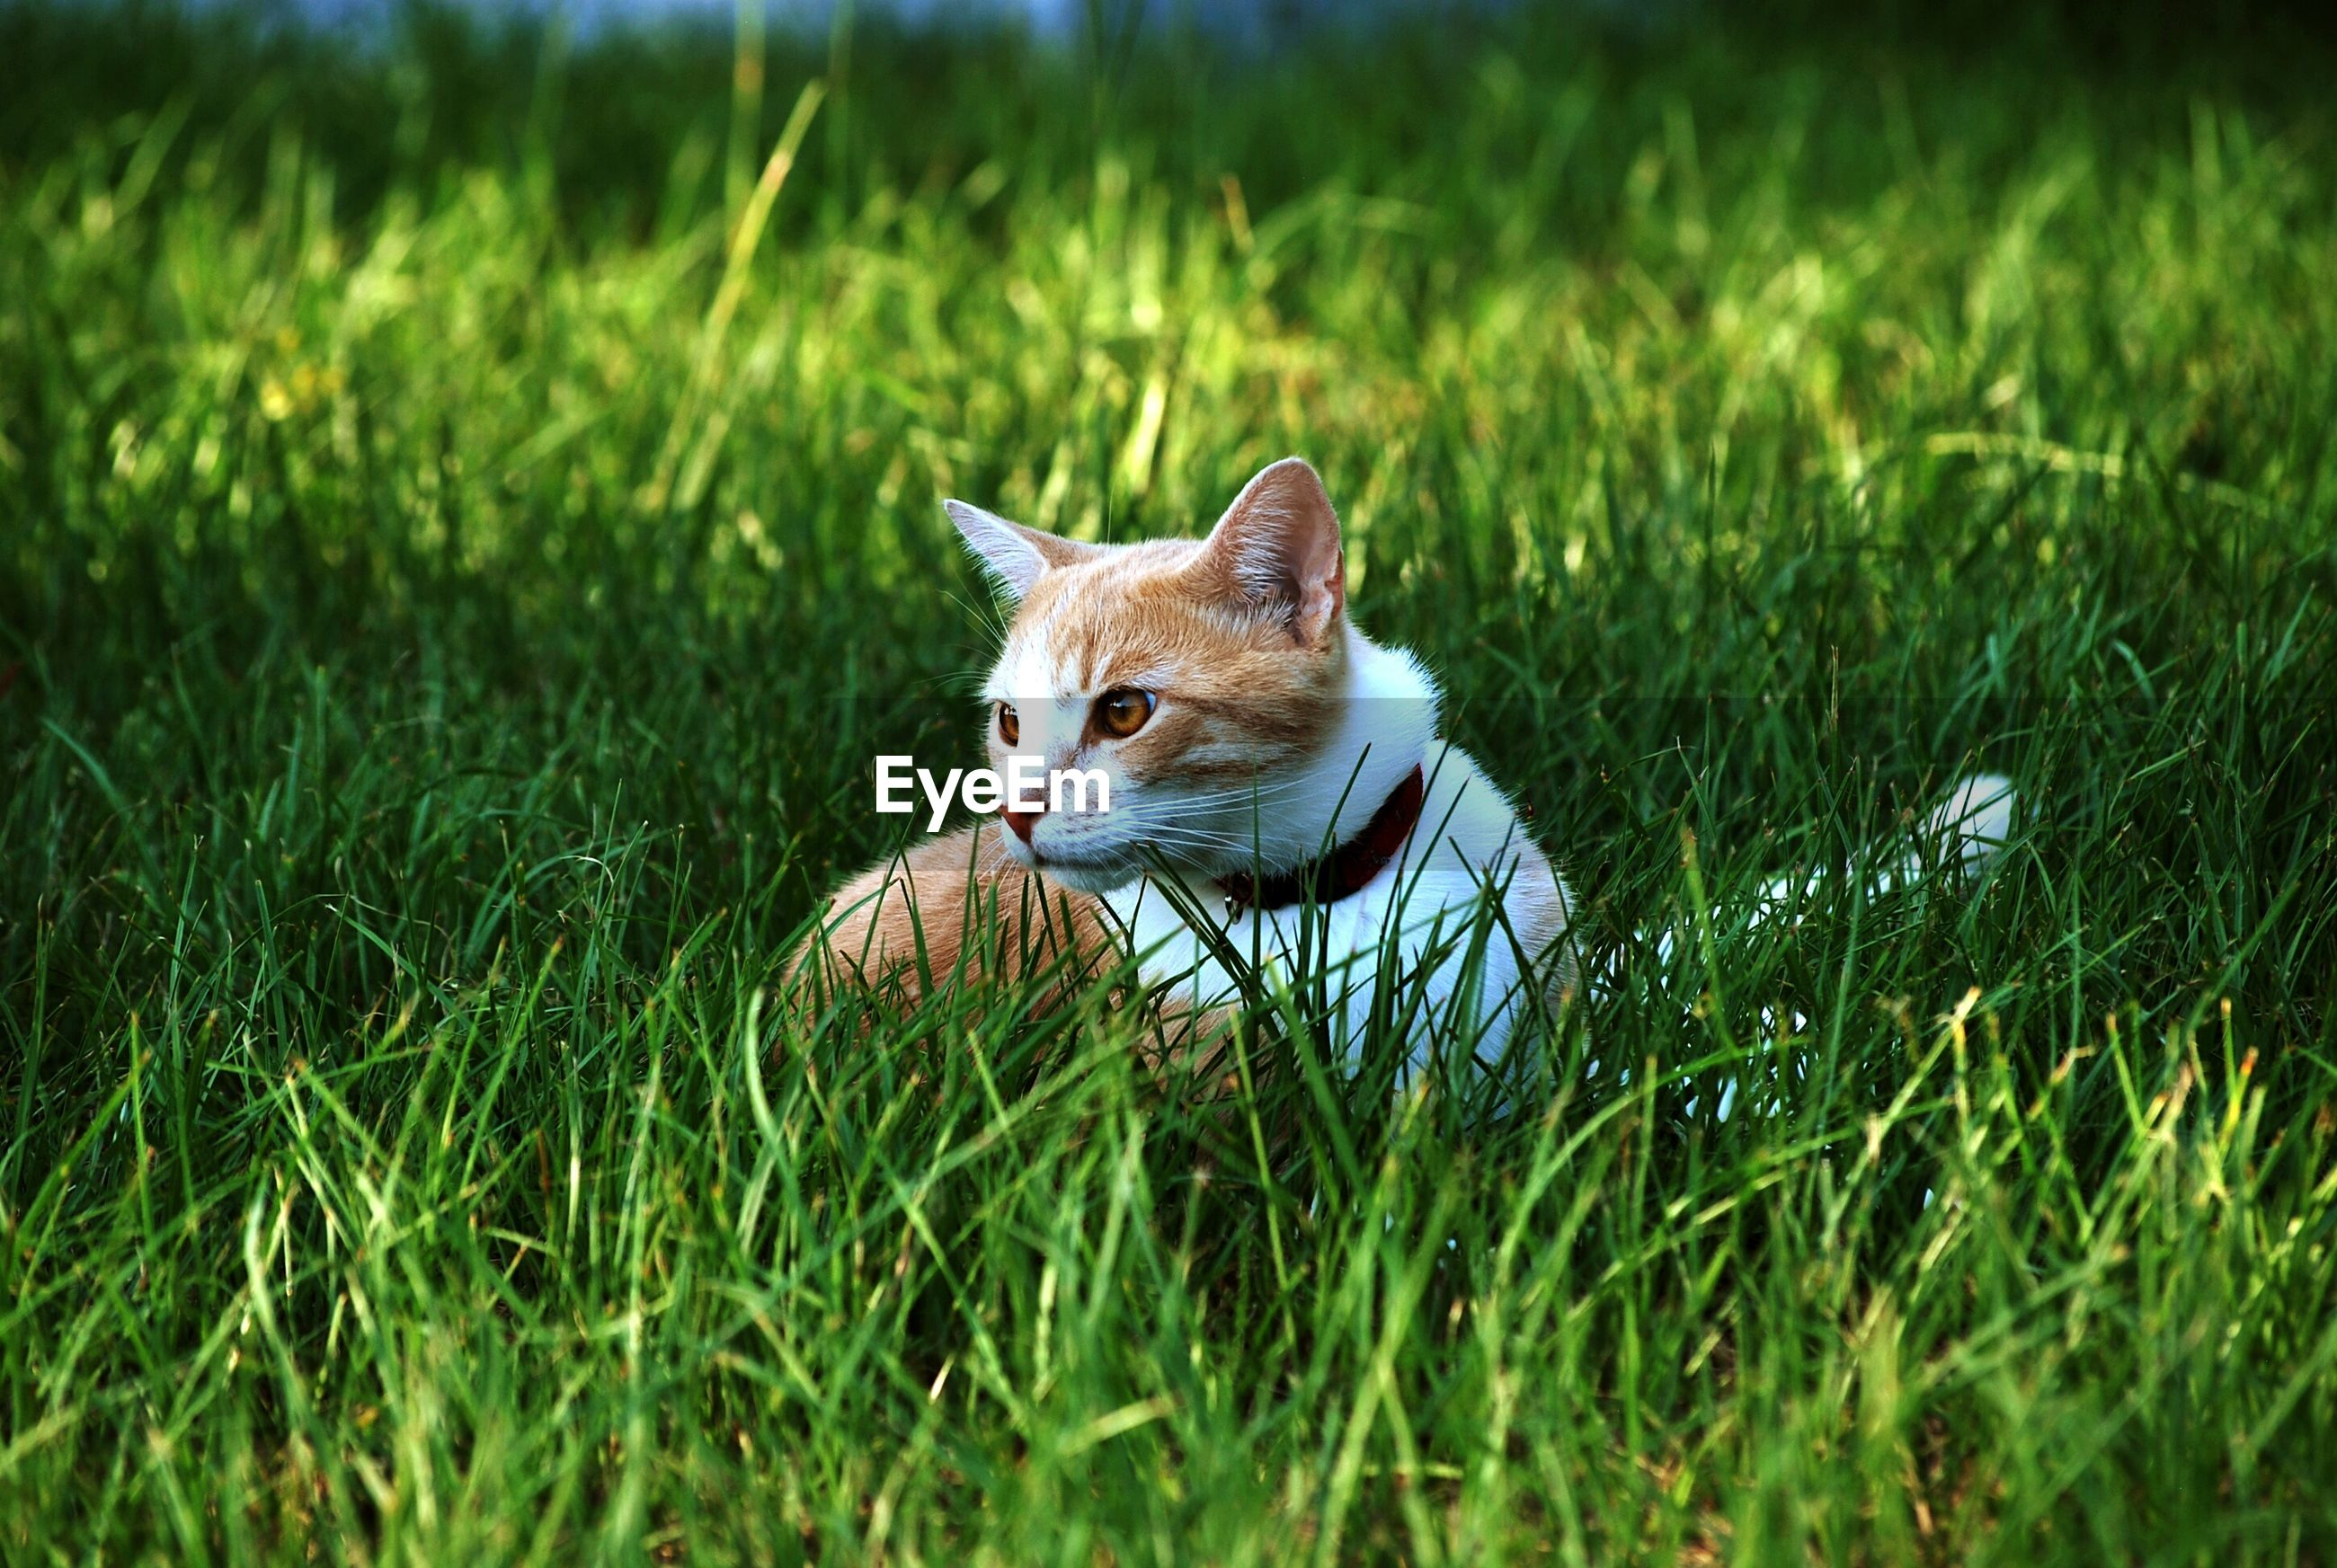 Close-up of cat sitting in grass